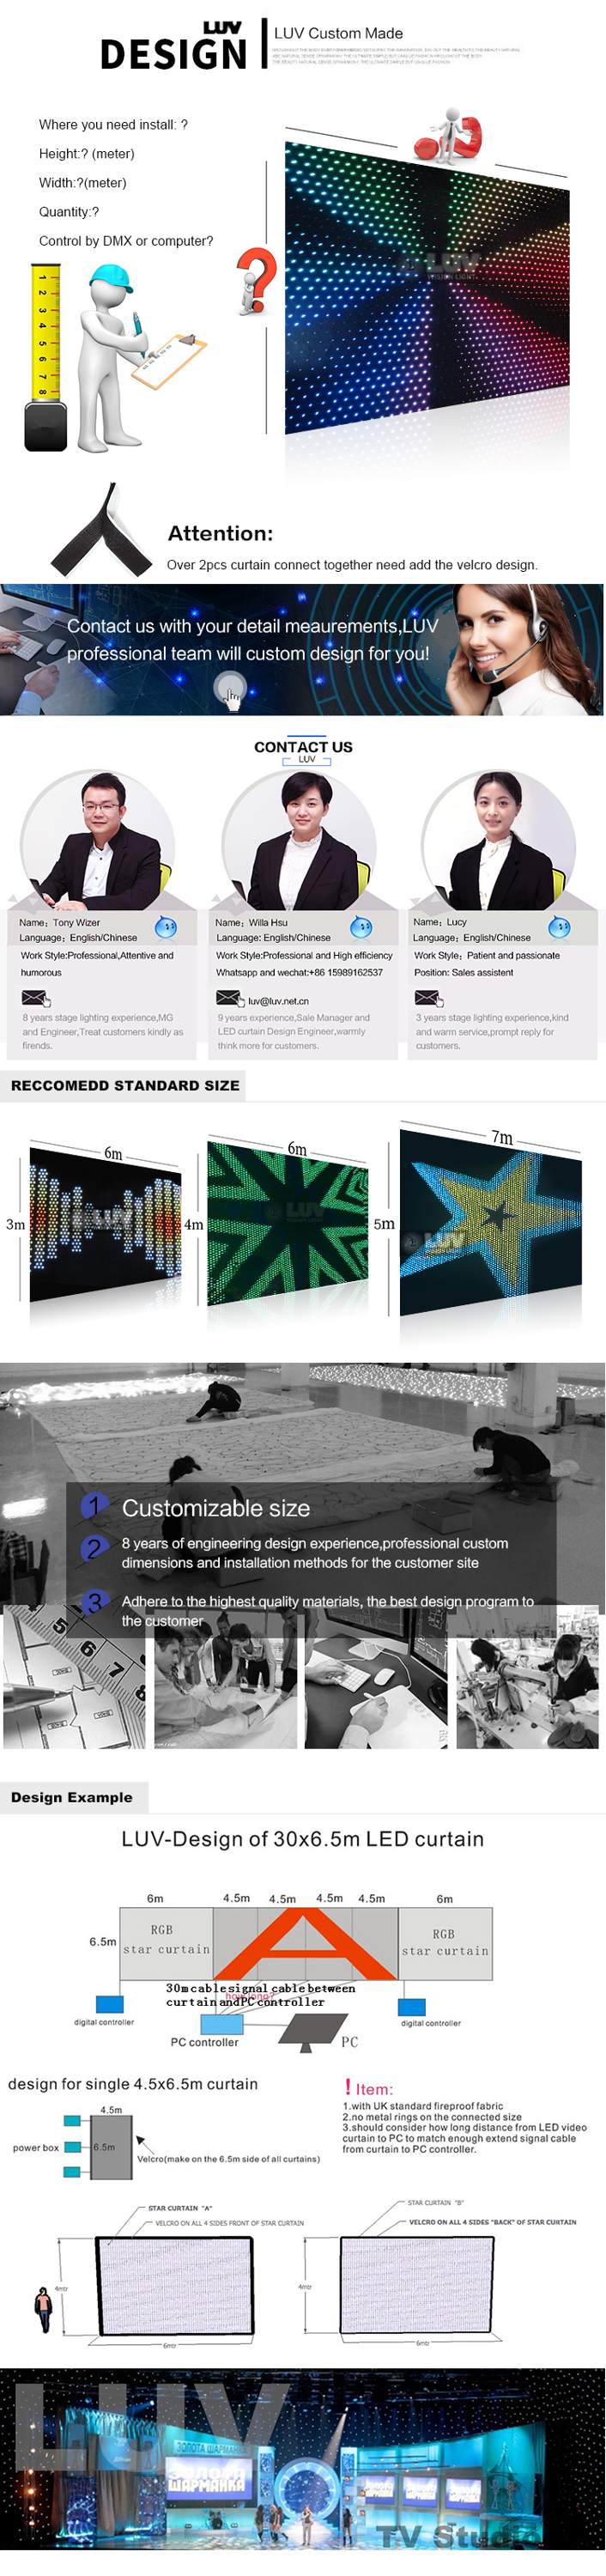 Led curtain concert - Wonderful Soft Led Curtain Screen For Concert Dj Stage Backdrops With Good Price